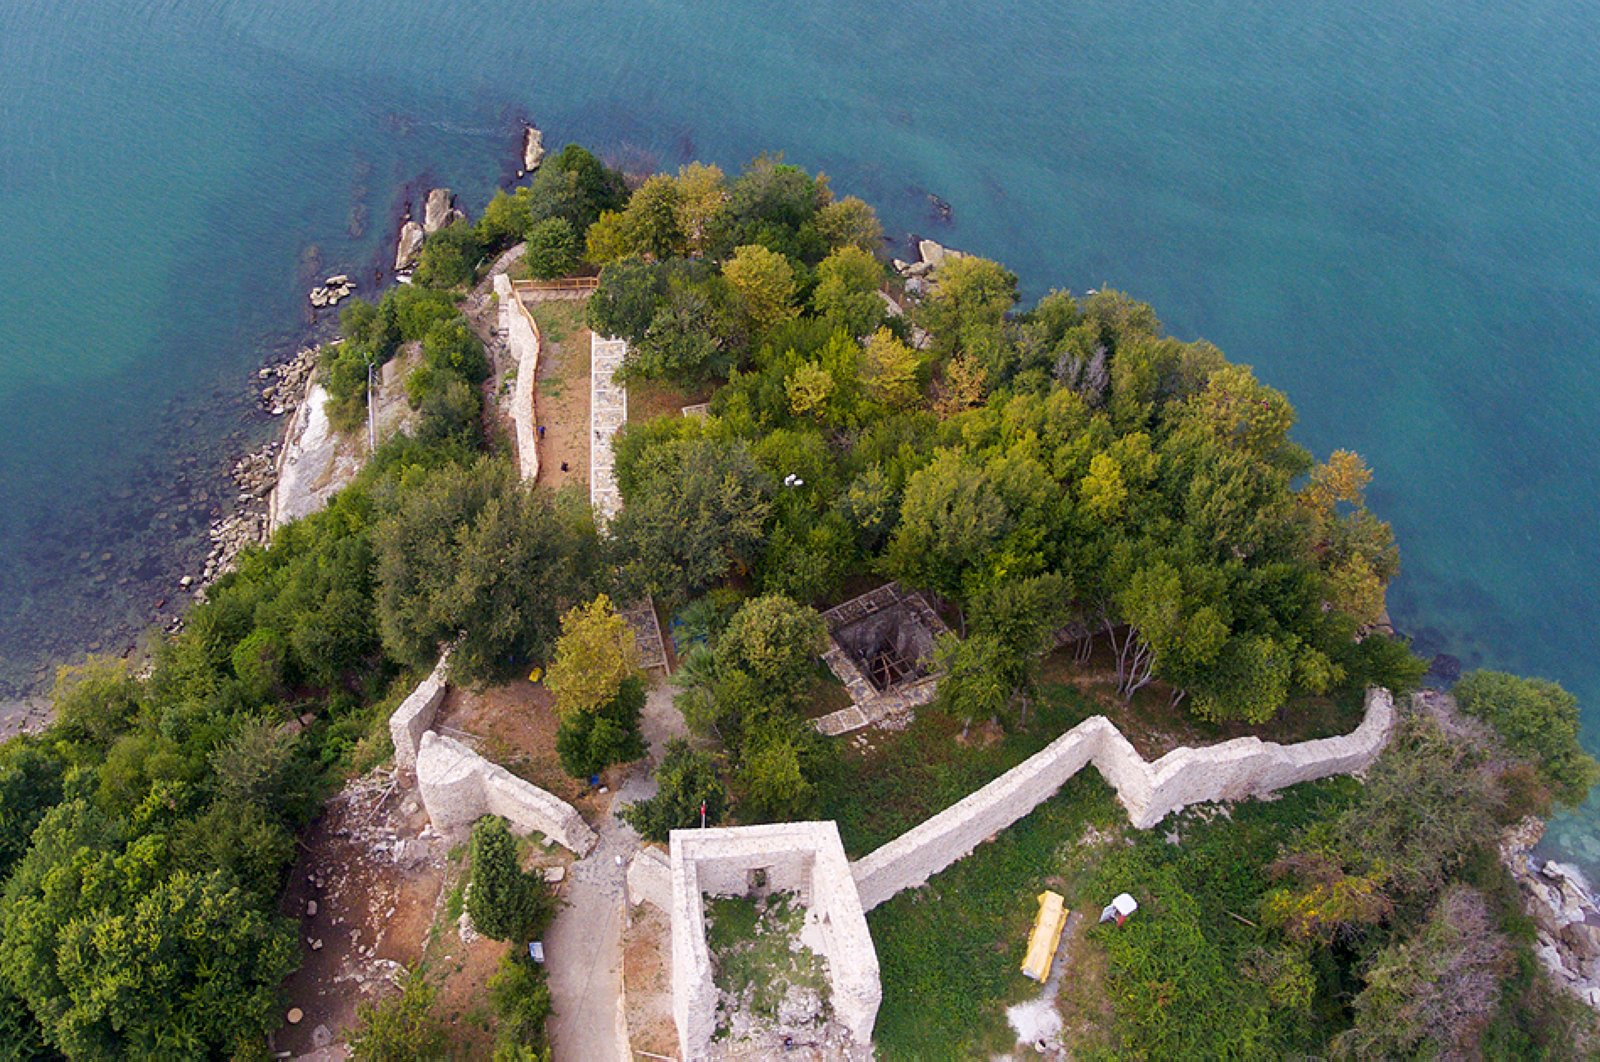 The Genoese Castle was built on a cliff between two bays. (AA Photo)